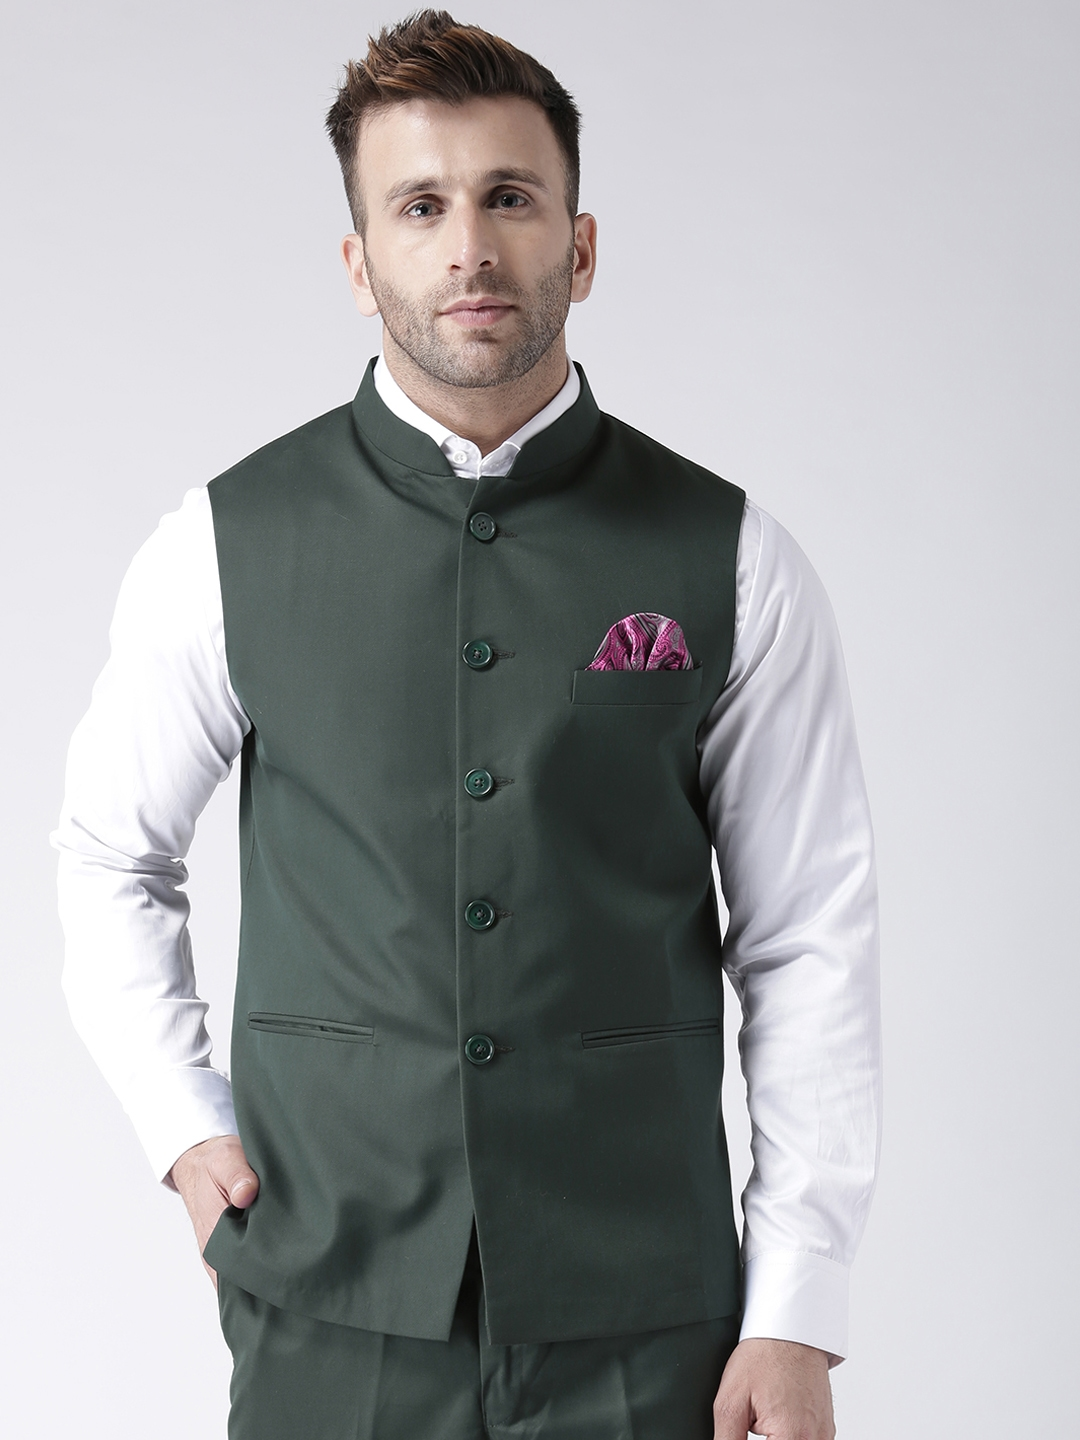 Men's Nehru Jackets at Rs. 799 Only